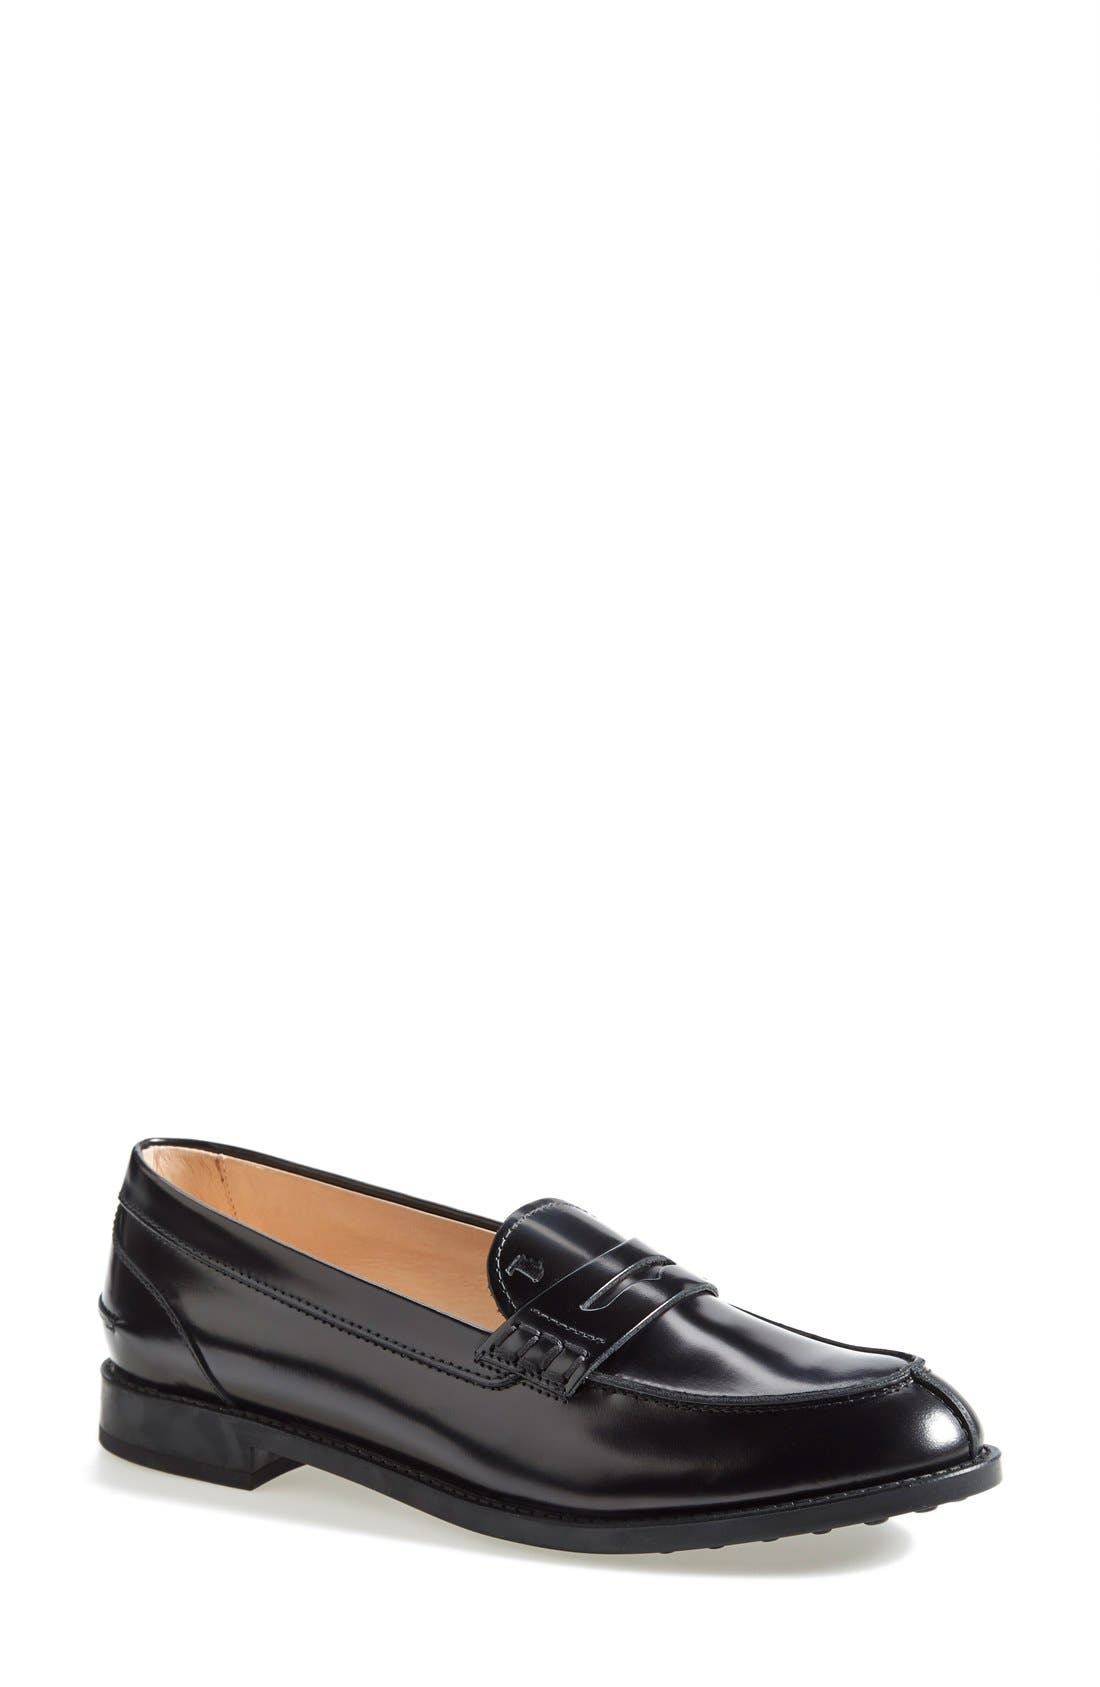 Alternate Image 1 Selected - Tod's 'Classic' Leather Loafer (Women)